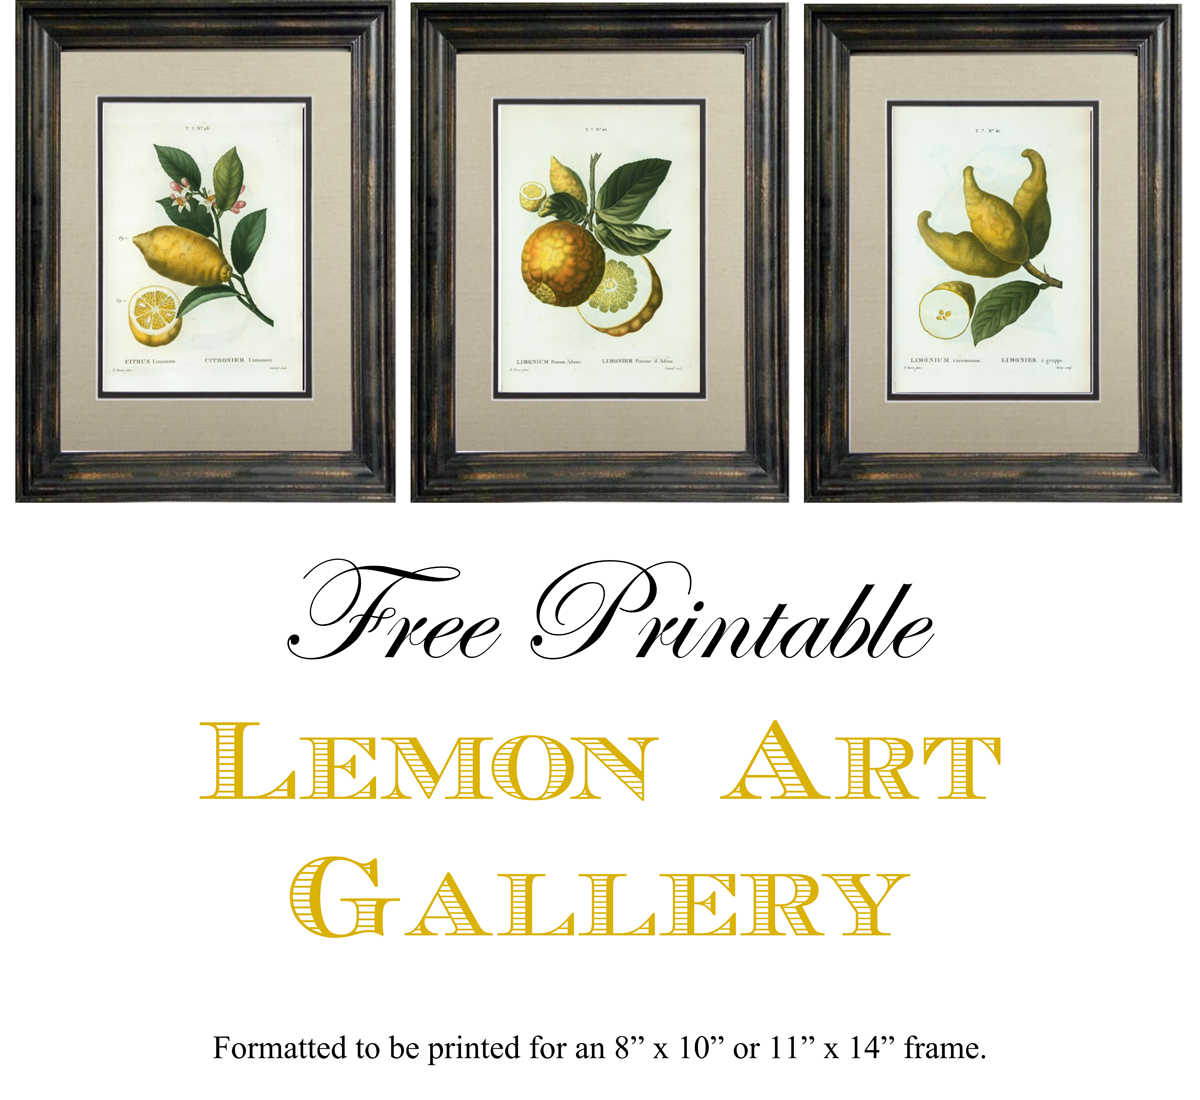 Free Printable Lemon Art Gallery